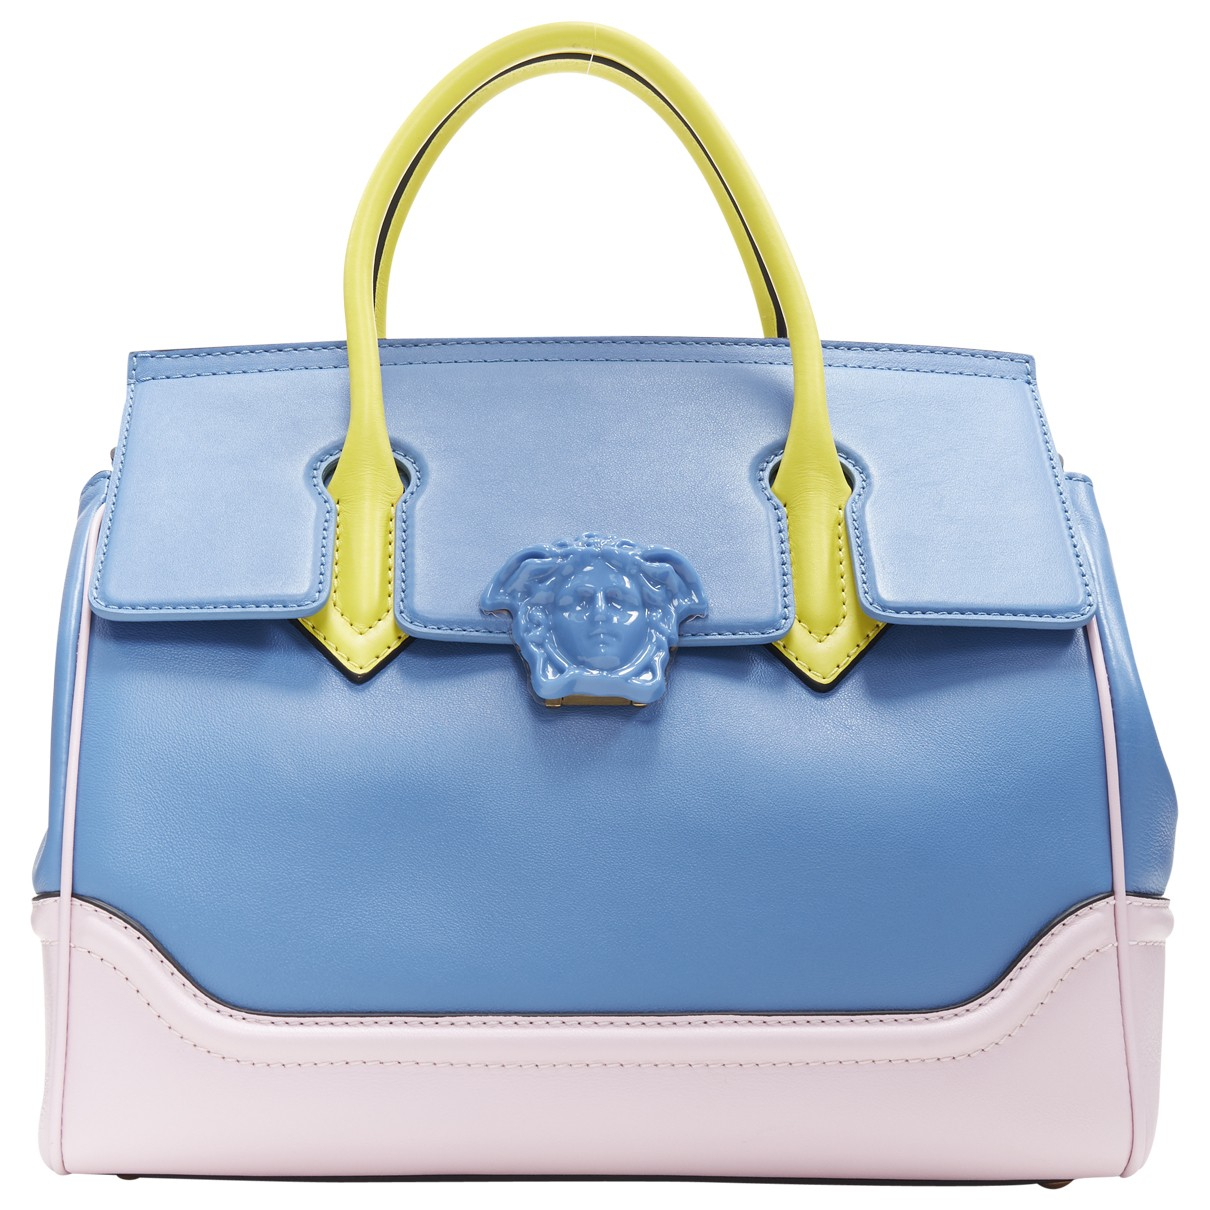 Versace \N Clutch in  Blau Leder